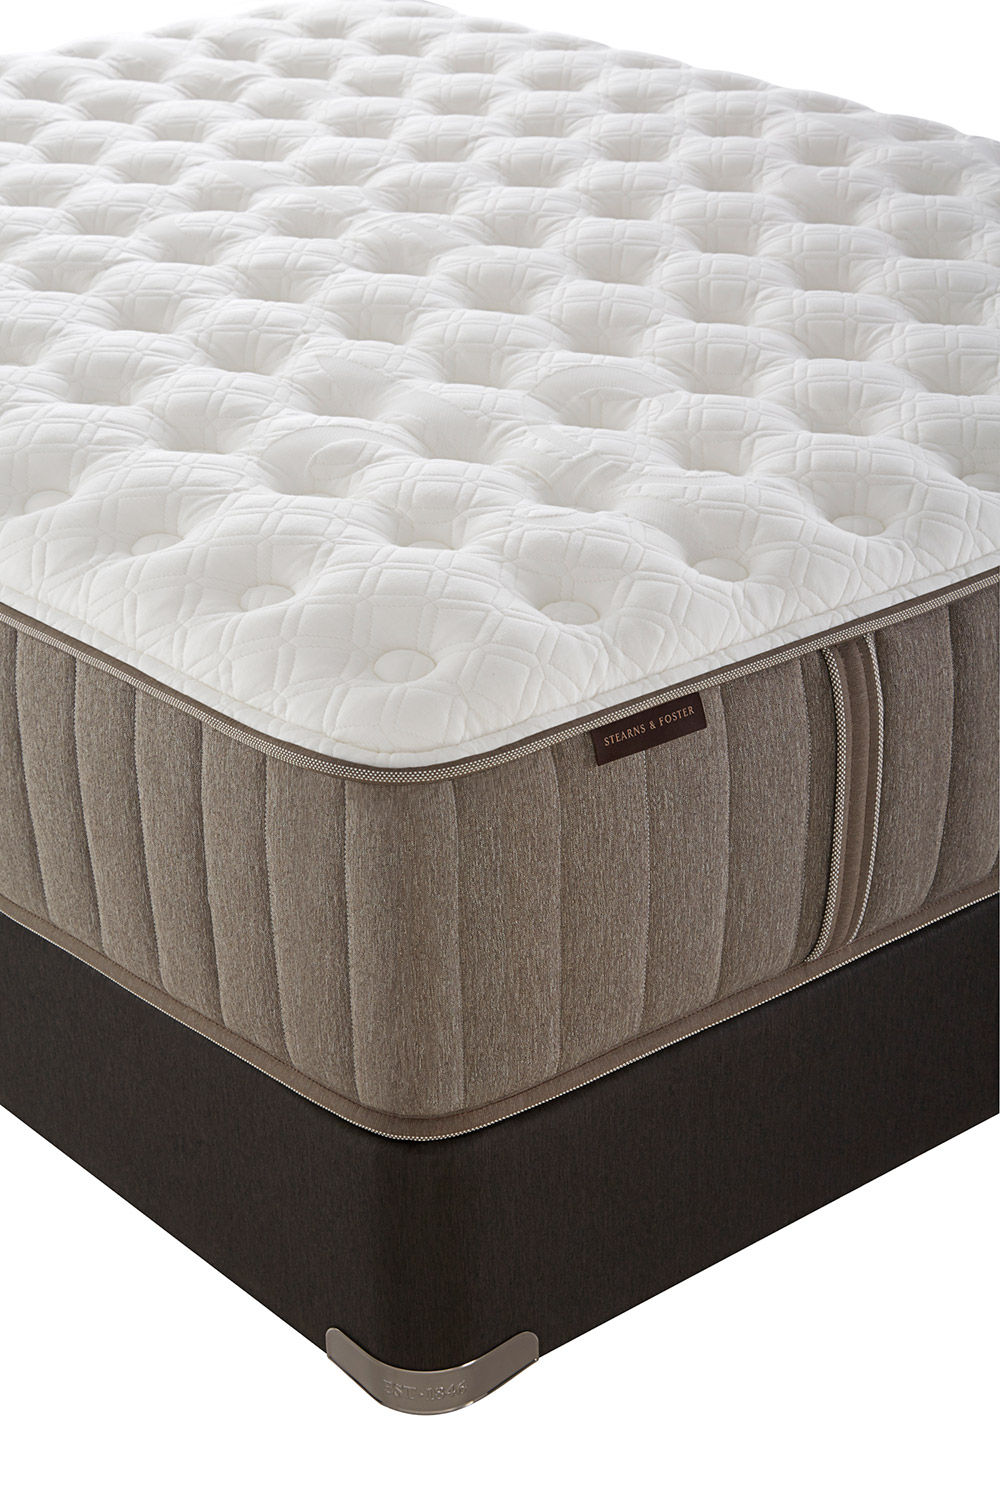 Picture of Stearns & Foster Scarborough Plush Tighttop Twin XL Mattress Only